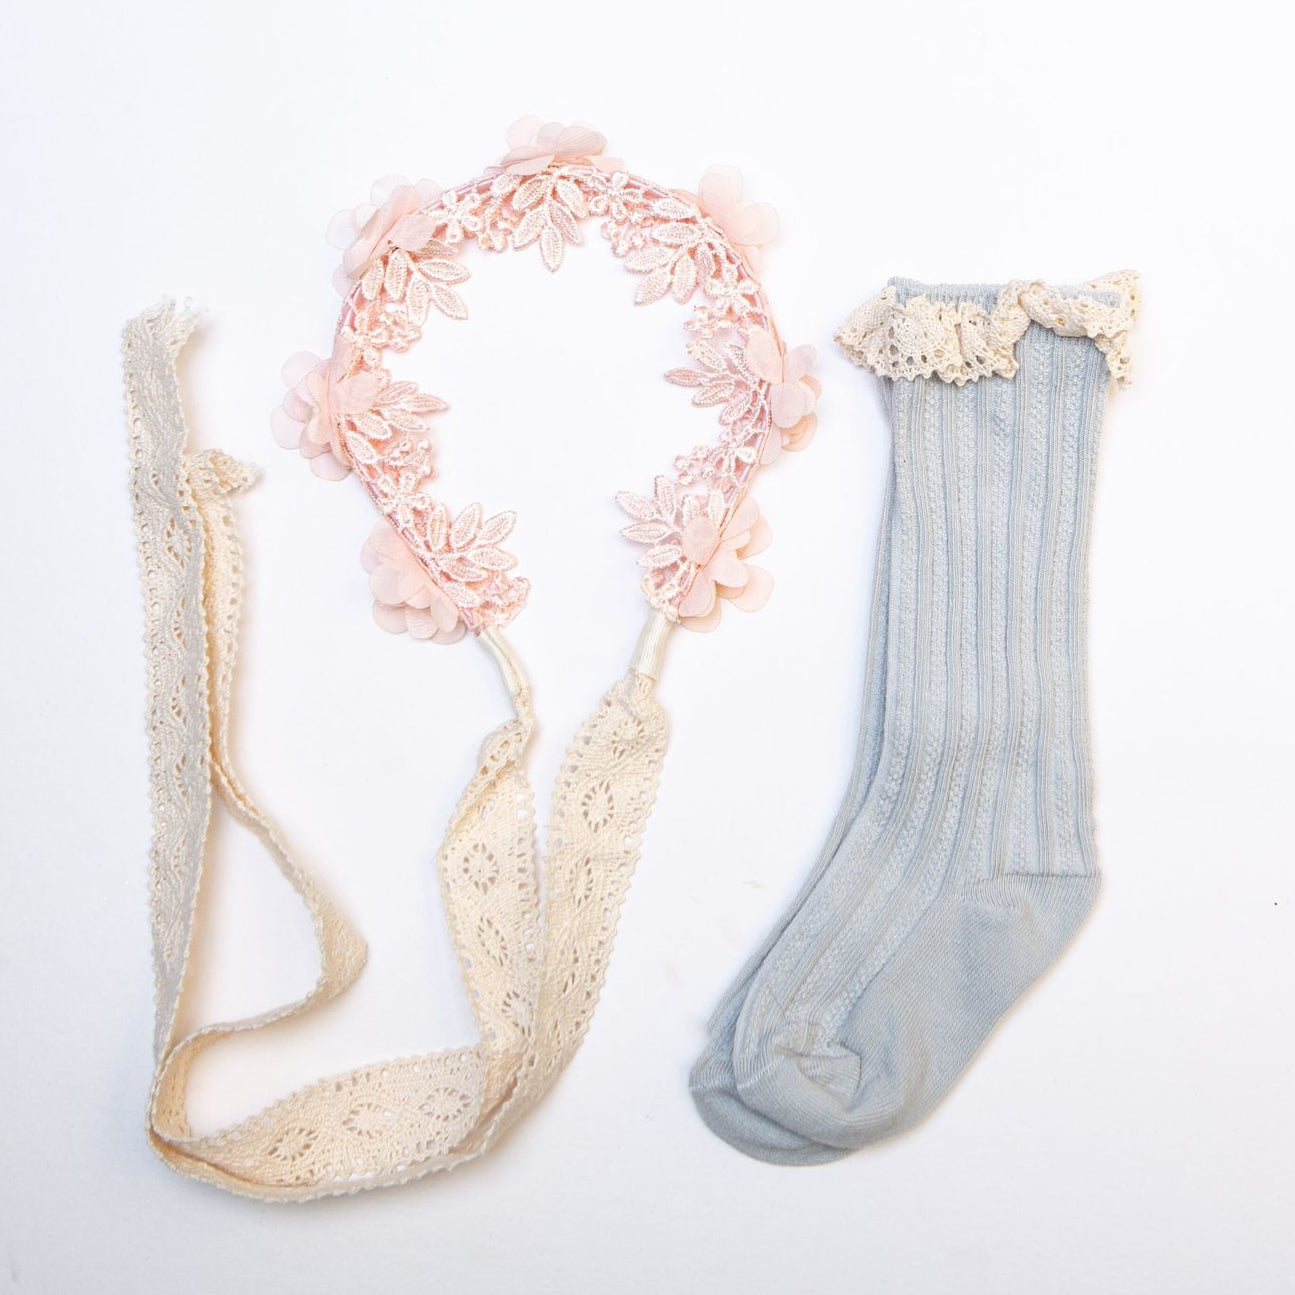 Soft Pink Hairband & Socks Set - Swan Princess Party